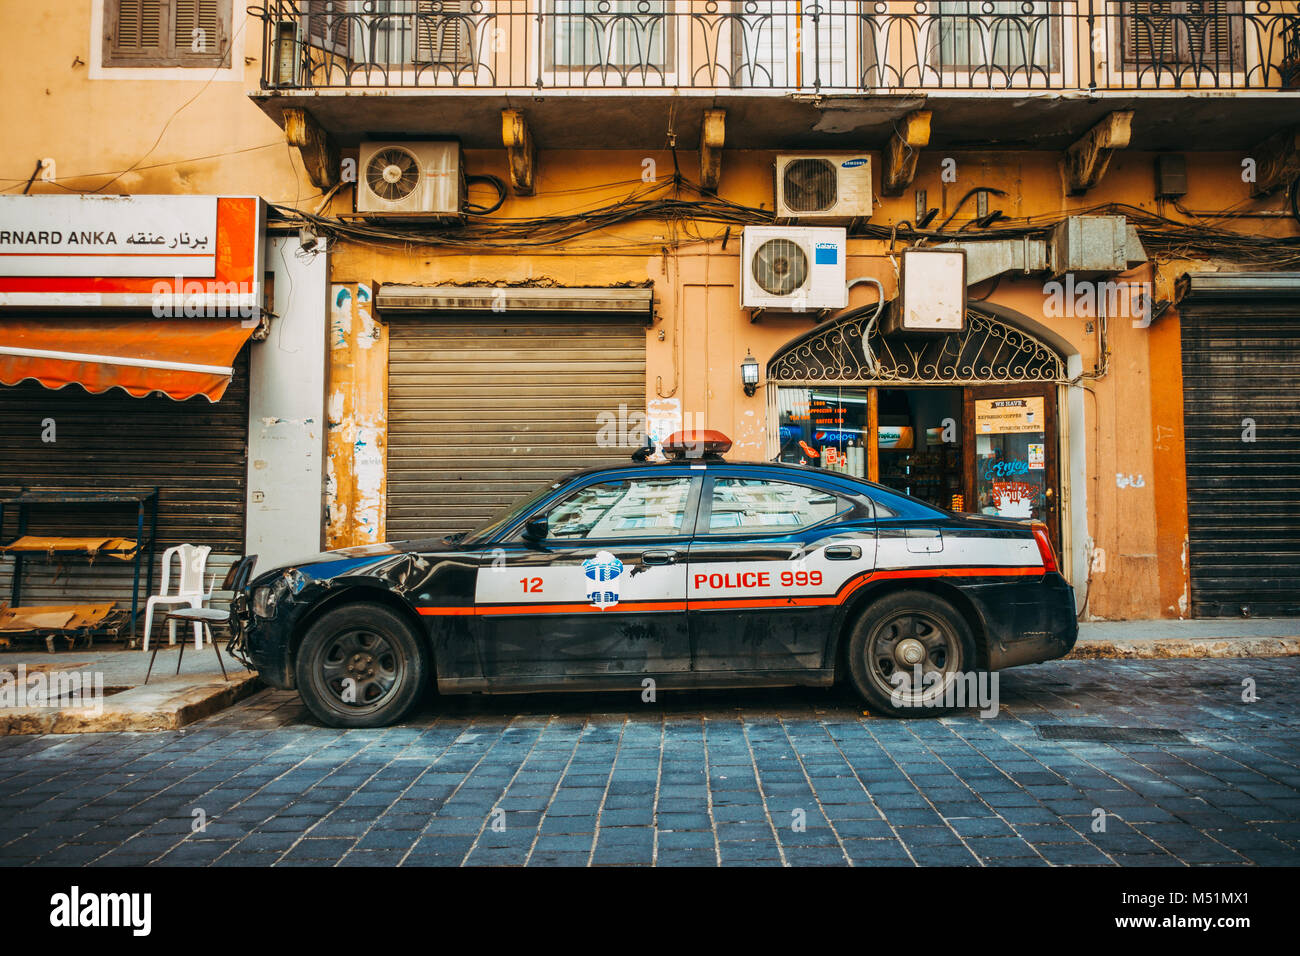 a damaged Dodge Charger Police Pursuit car sits on the roadside in Beirut, Lebanon - Stock Image